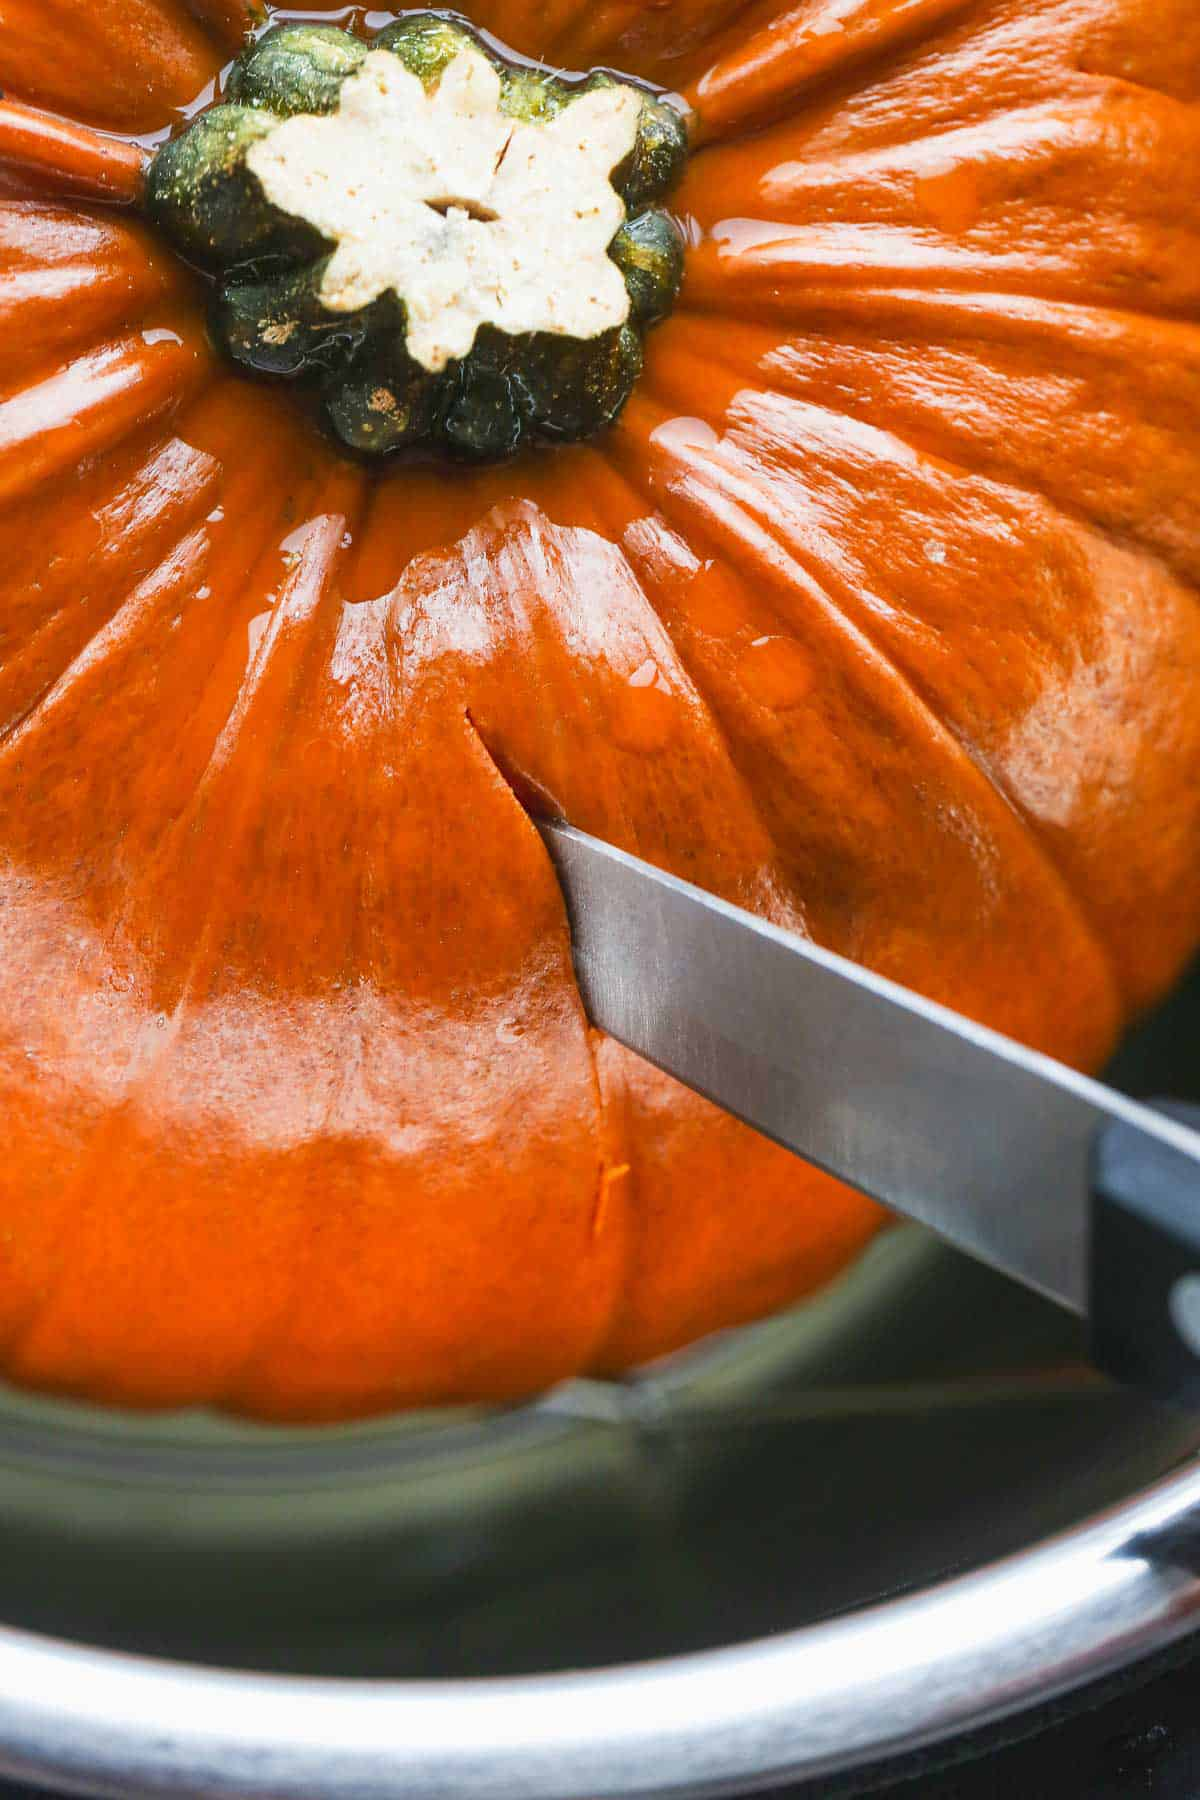 Cutting through the steamed pumpkin with a knife